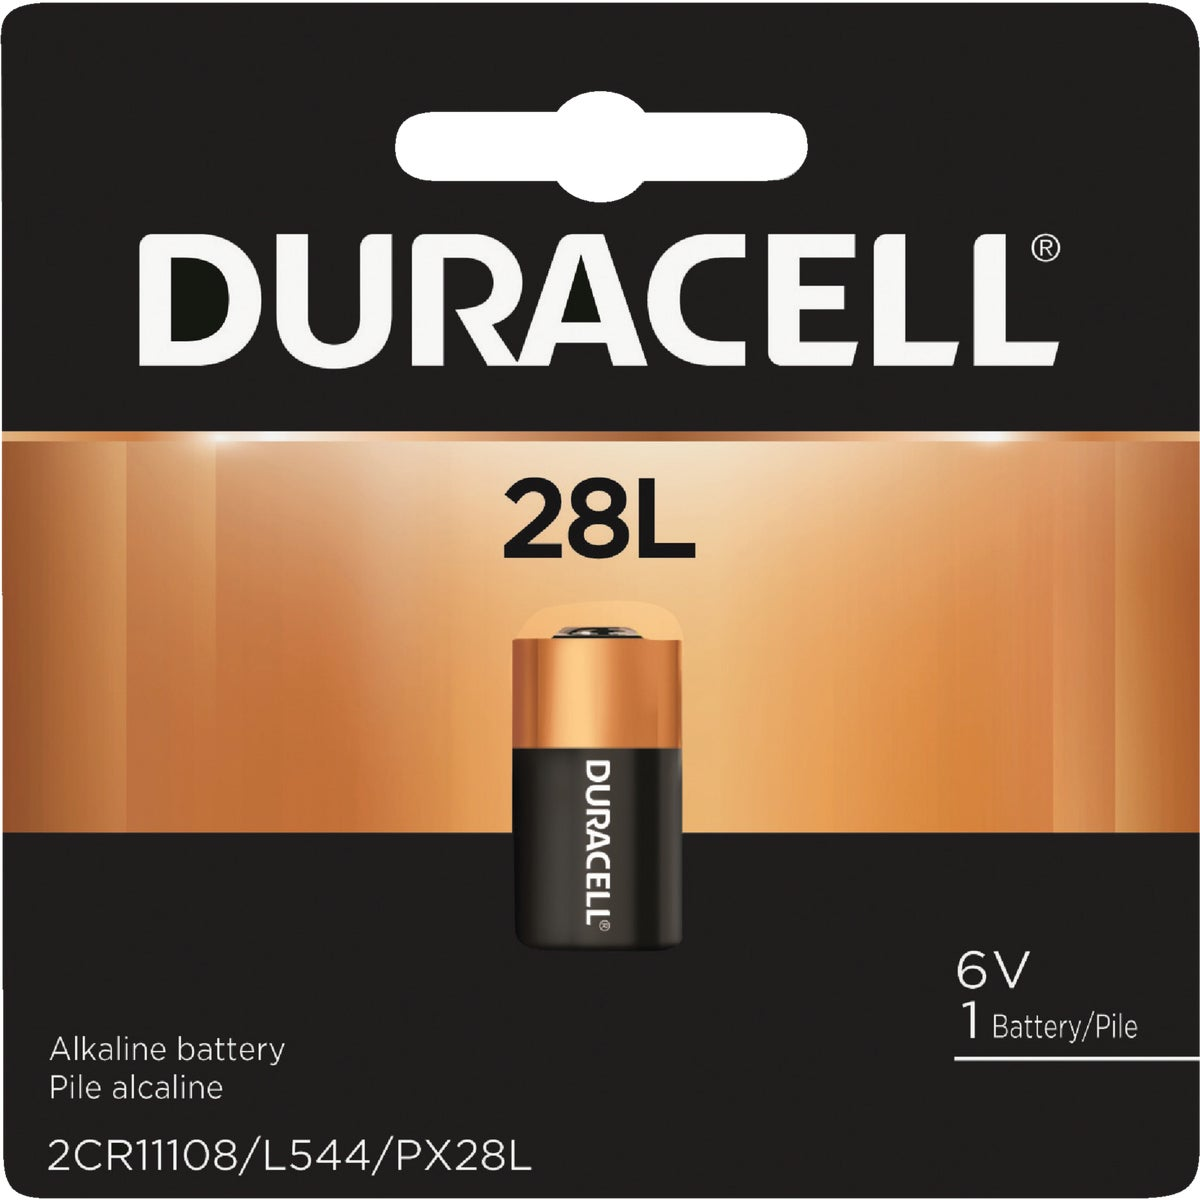 PX28L 6V PHOTO BATTERY - 28987 by P & G  Duracell